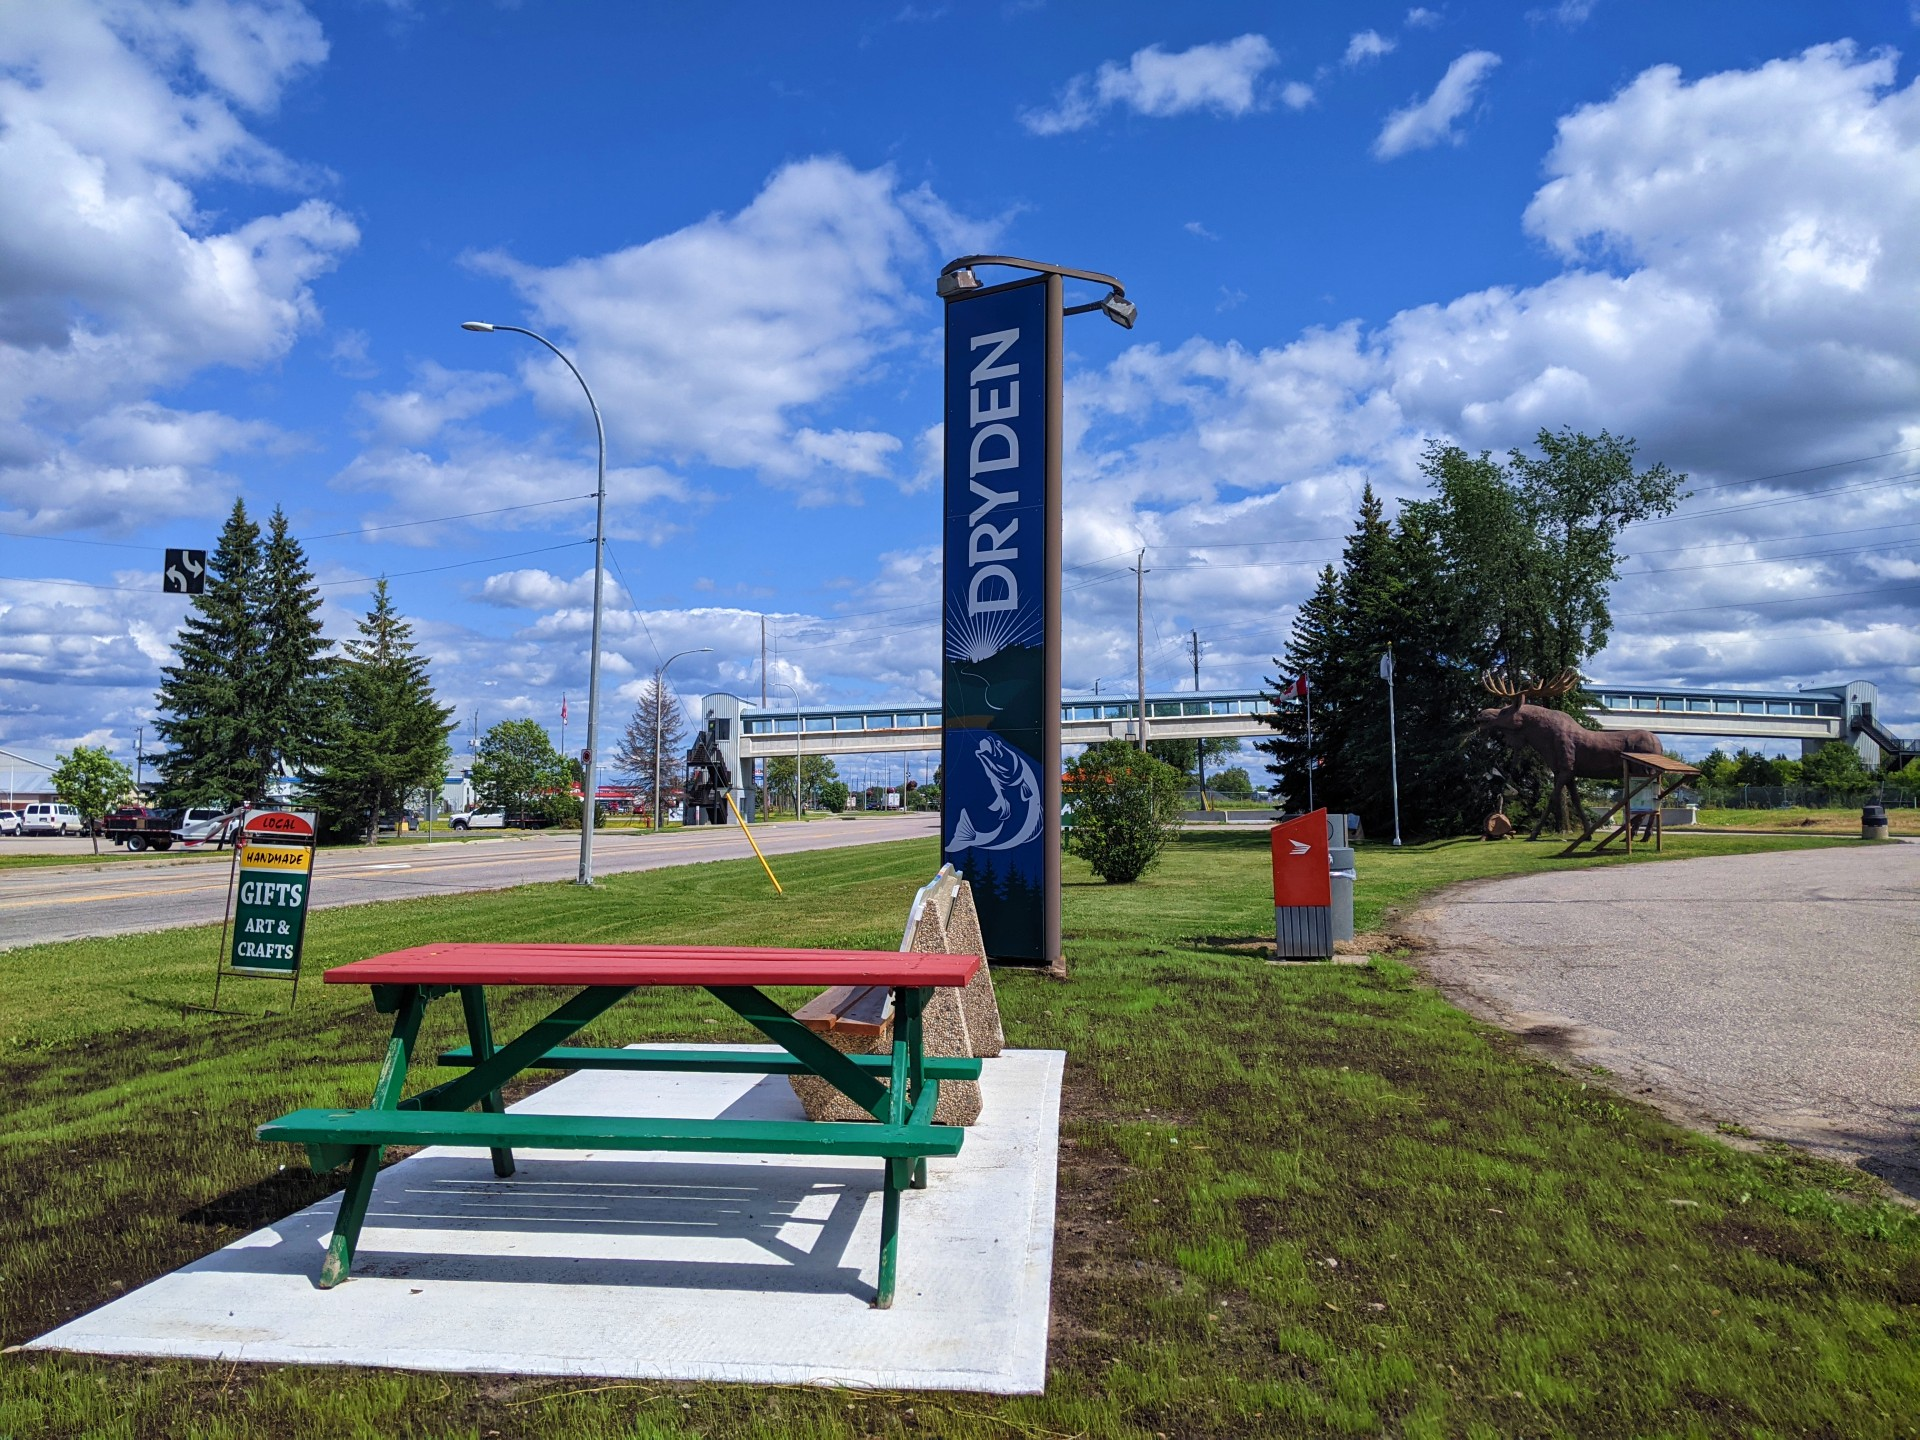 Tall, vertical Dryden sign with a silhouette of a fish on the bottom of the sign. Picnic bench in foreground. Trans Canada Highway to the left.